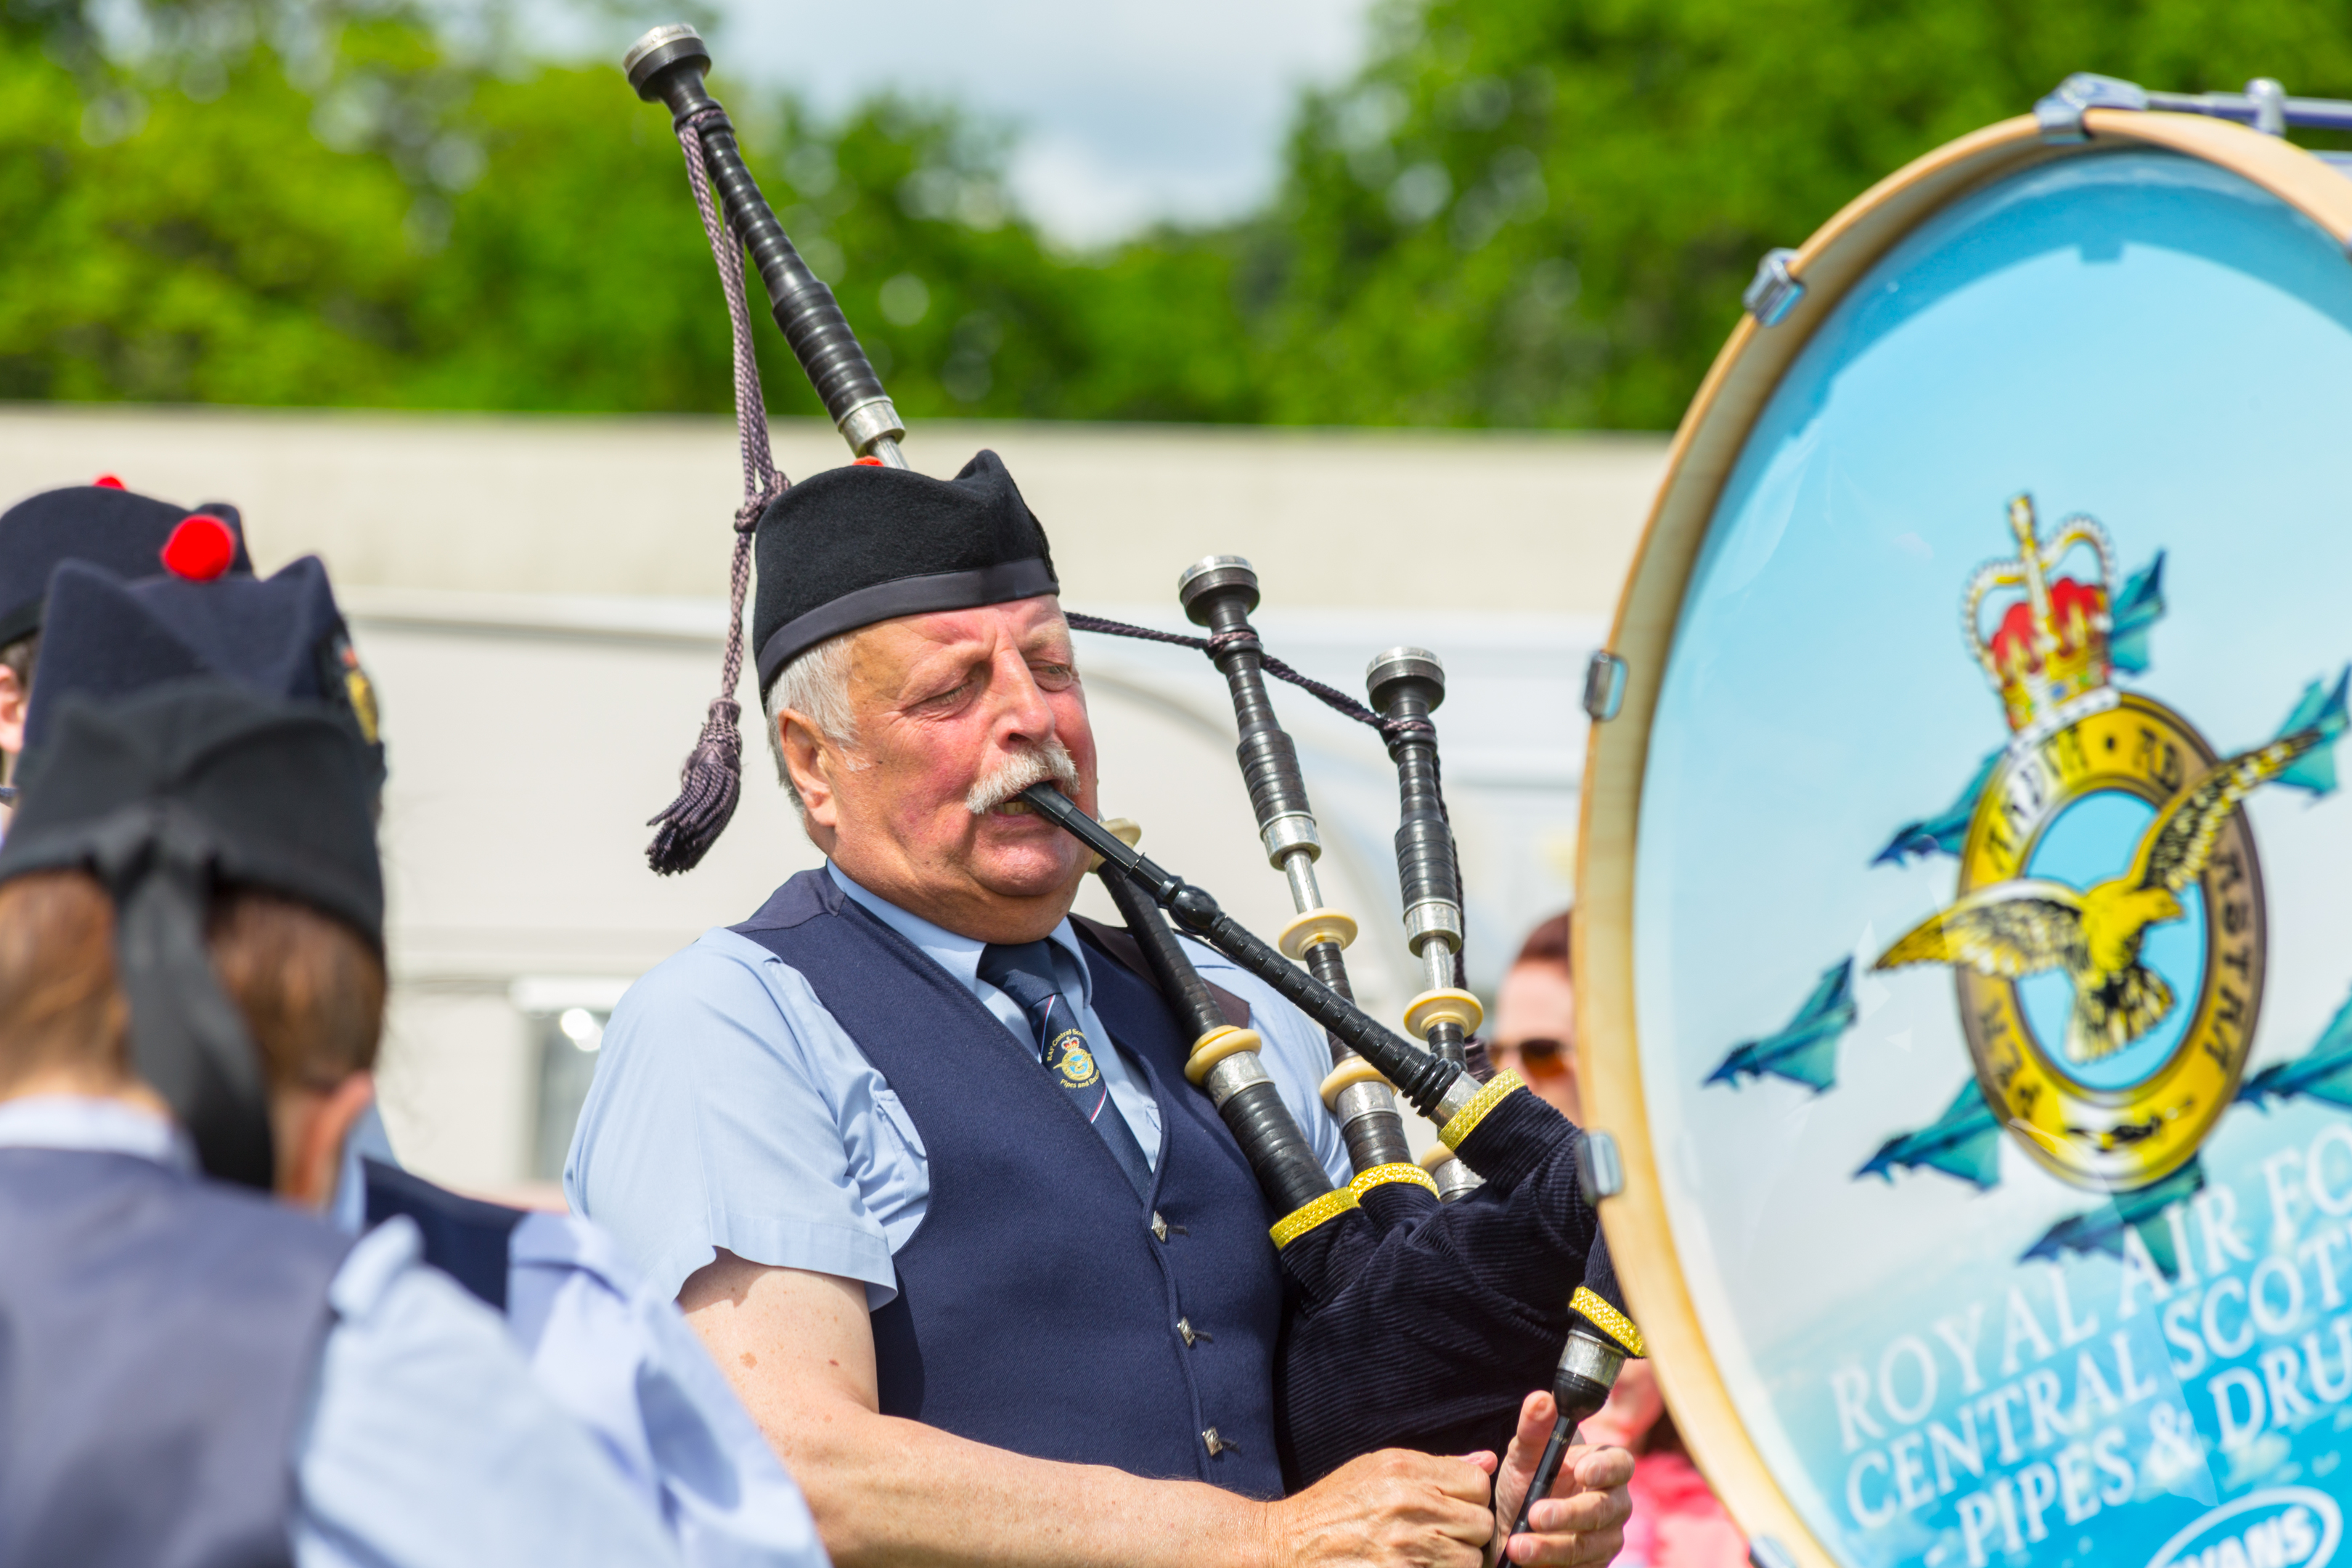 A piper at the Markinch Highland Games.